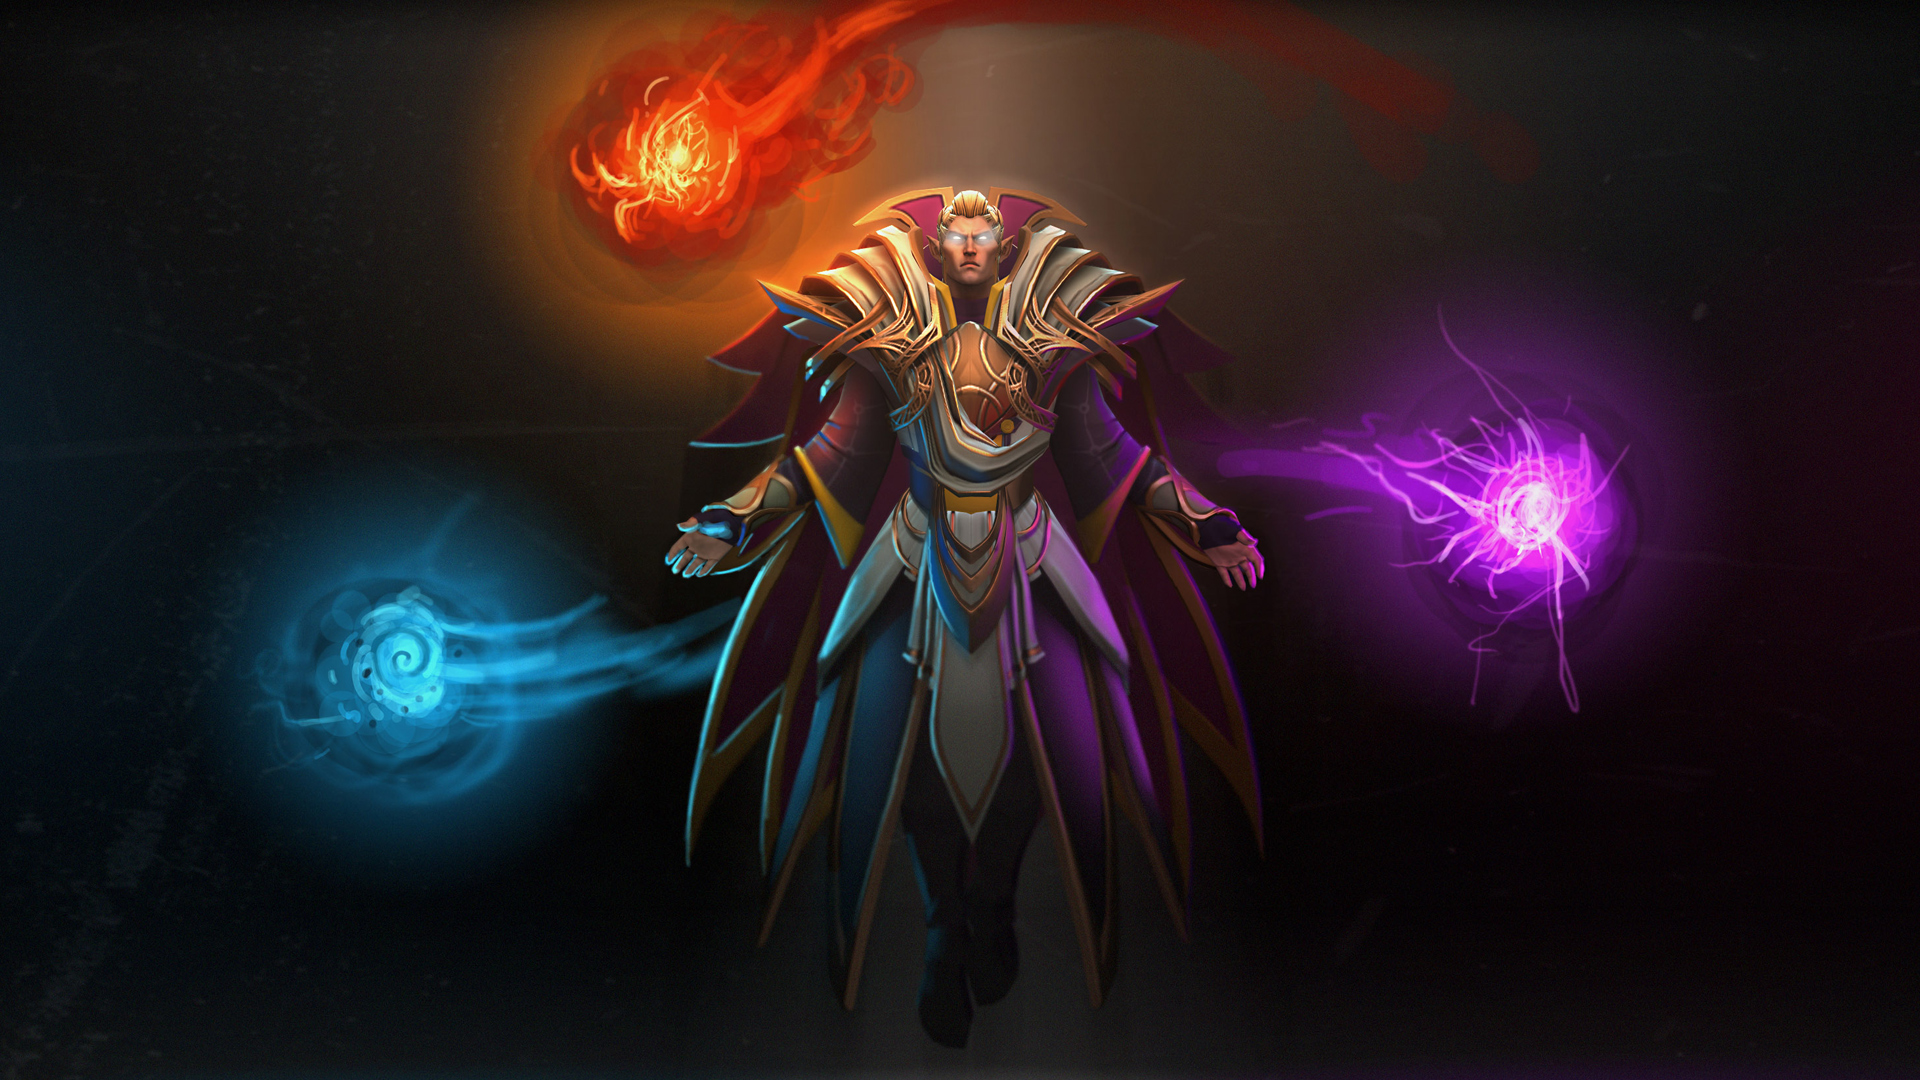 invoker dota 2 set game hd wallpaper 1920x1080 1080p full resolution 1920x1080